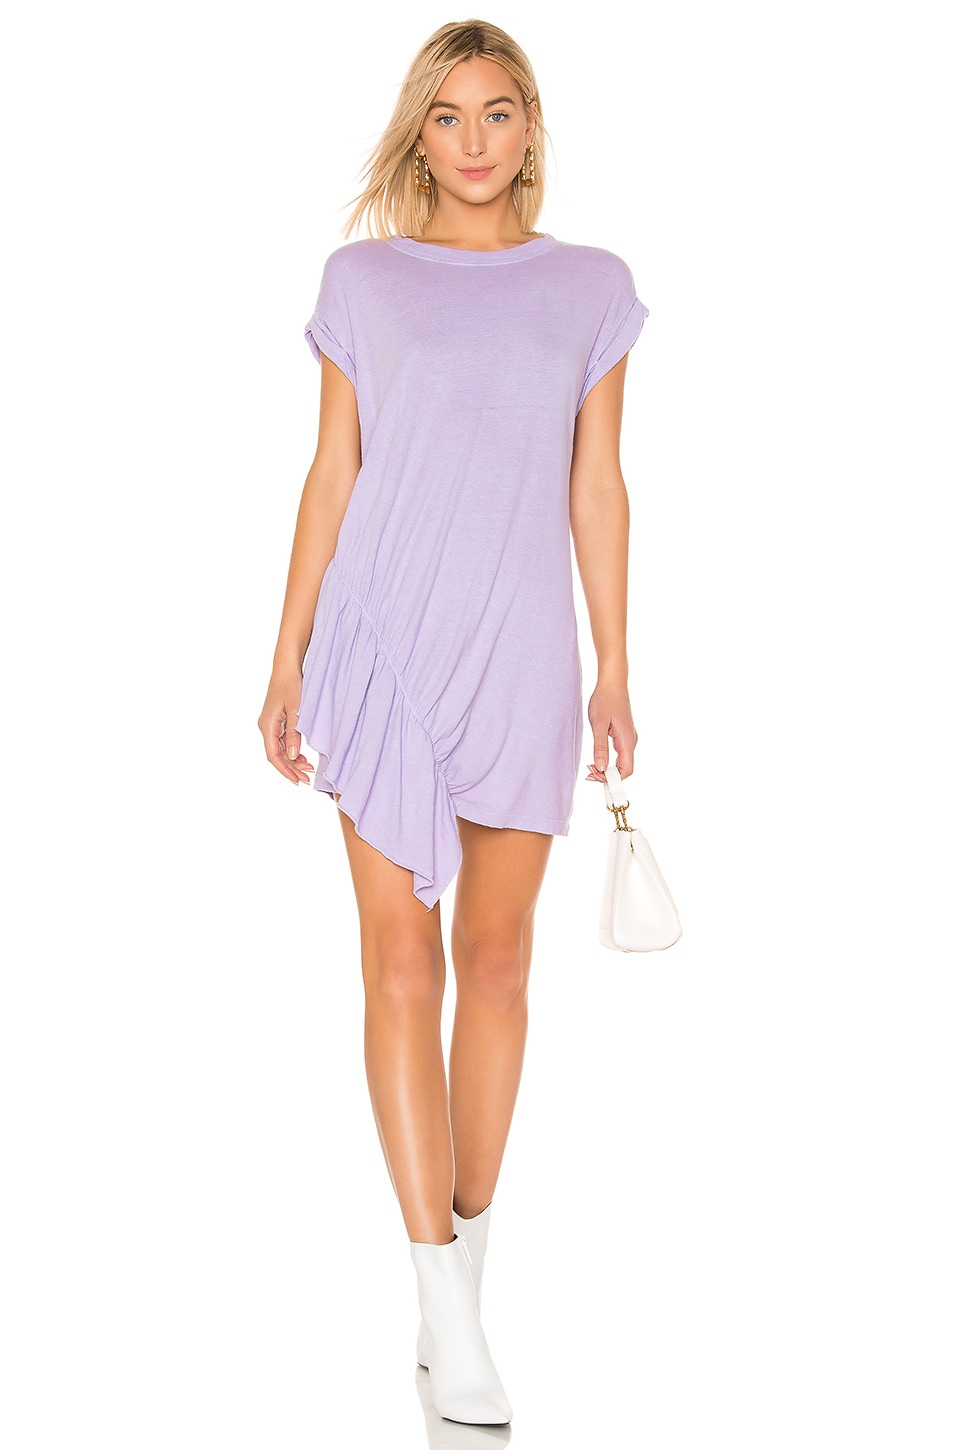 Current/Elliott The Pacific Ave Dress in Orchid Petal